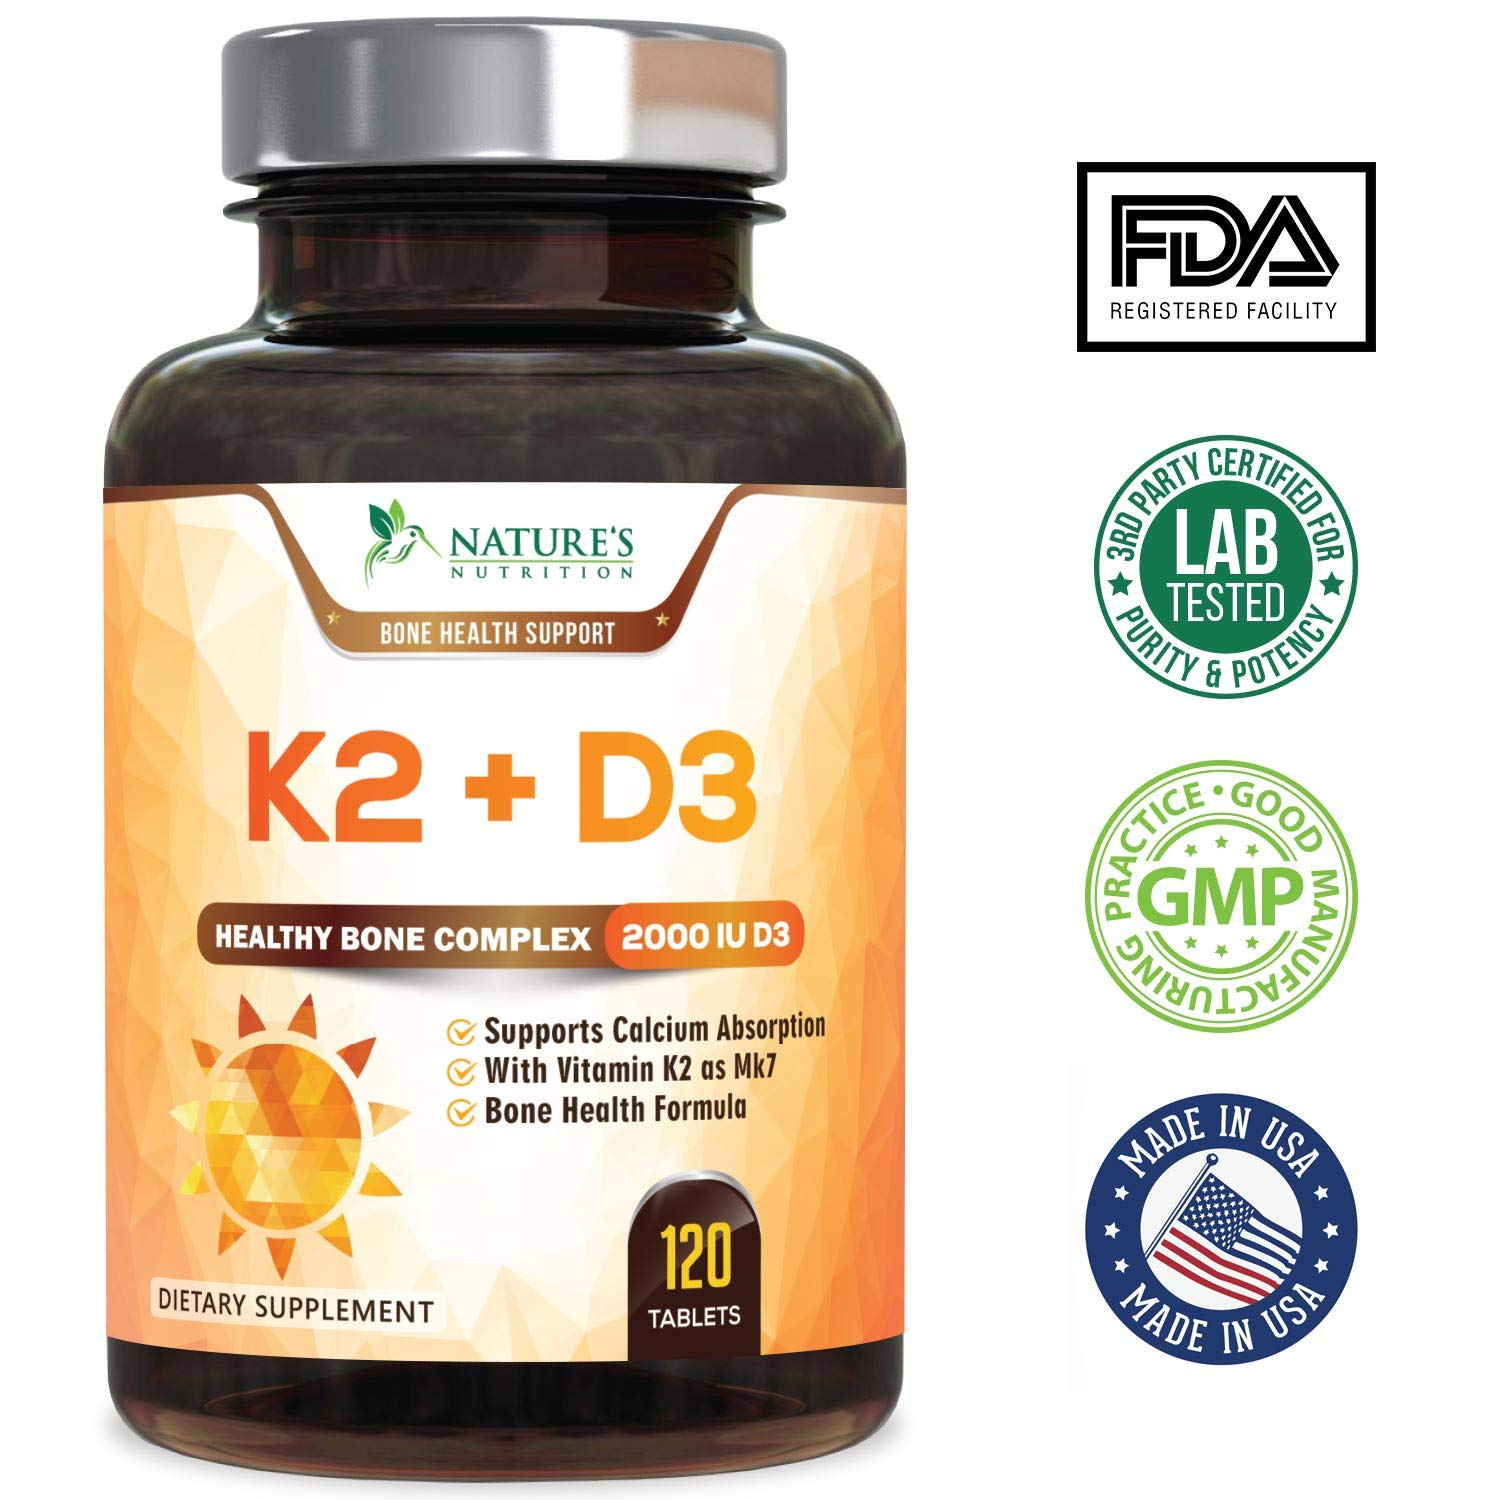 ... D3 Supplement - Vitamin D & K Complex for Calcium Absorption - Healthy Bone, Heart and Teeth Formula - MK-7, Non-GMO & Gluten Free by Natures Nutrition ...